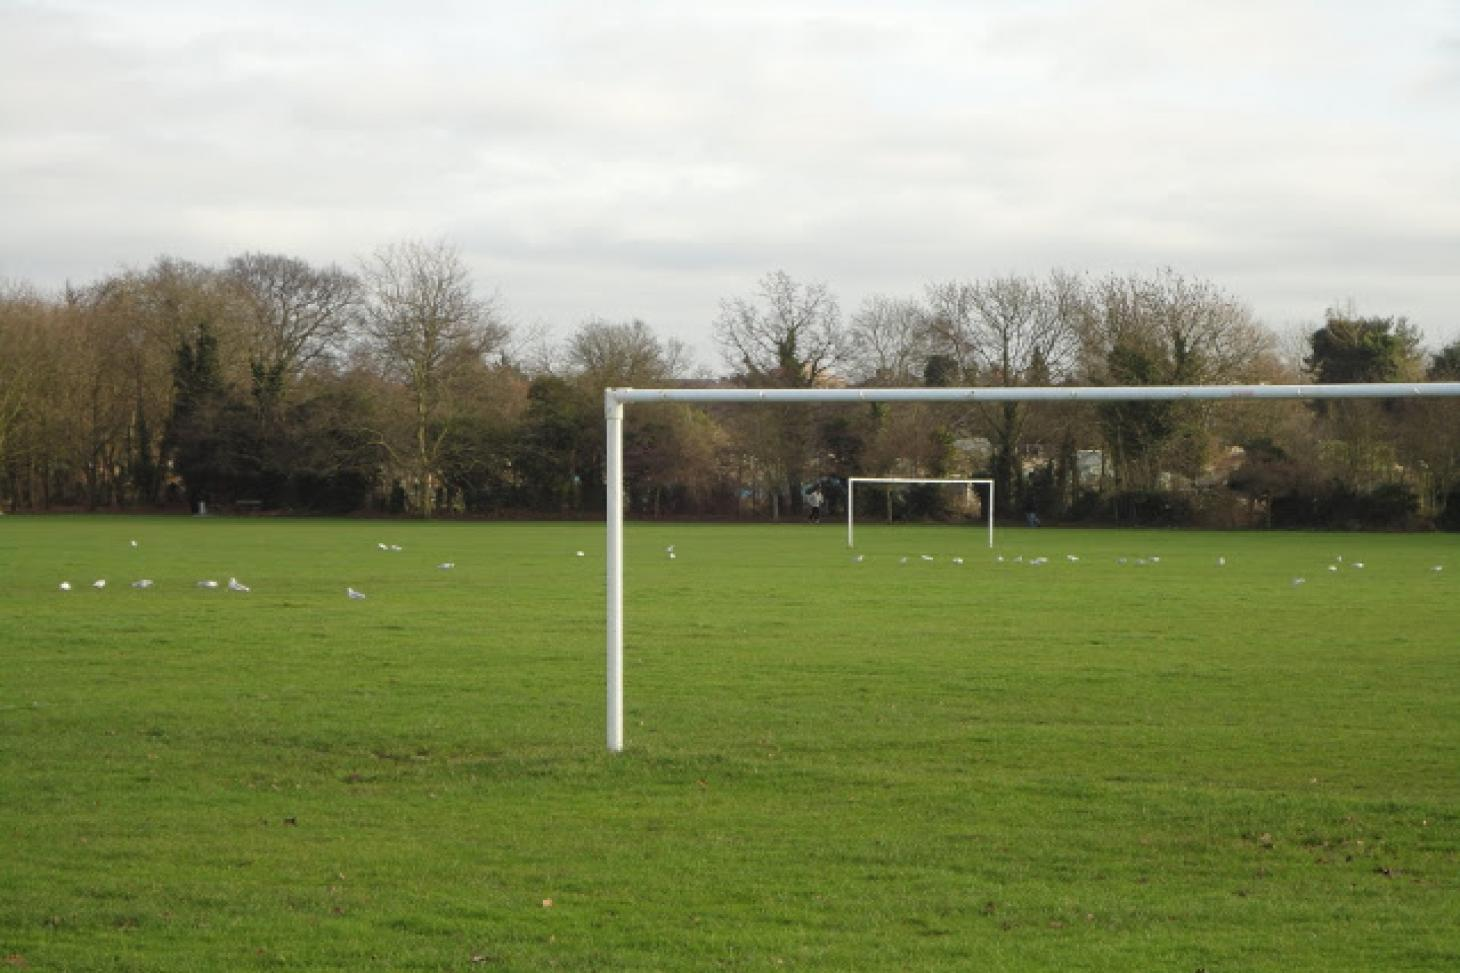 Headstone Manor Recreation Ground Full size | Grass cricket facilities